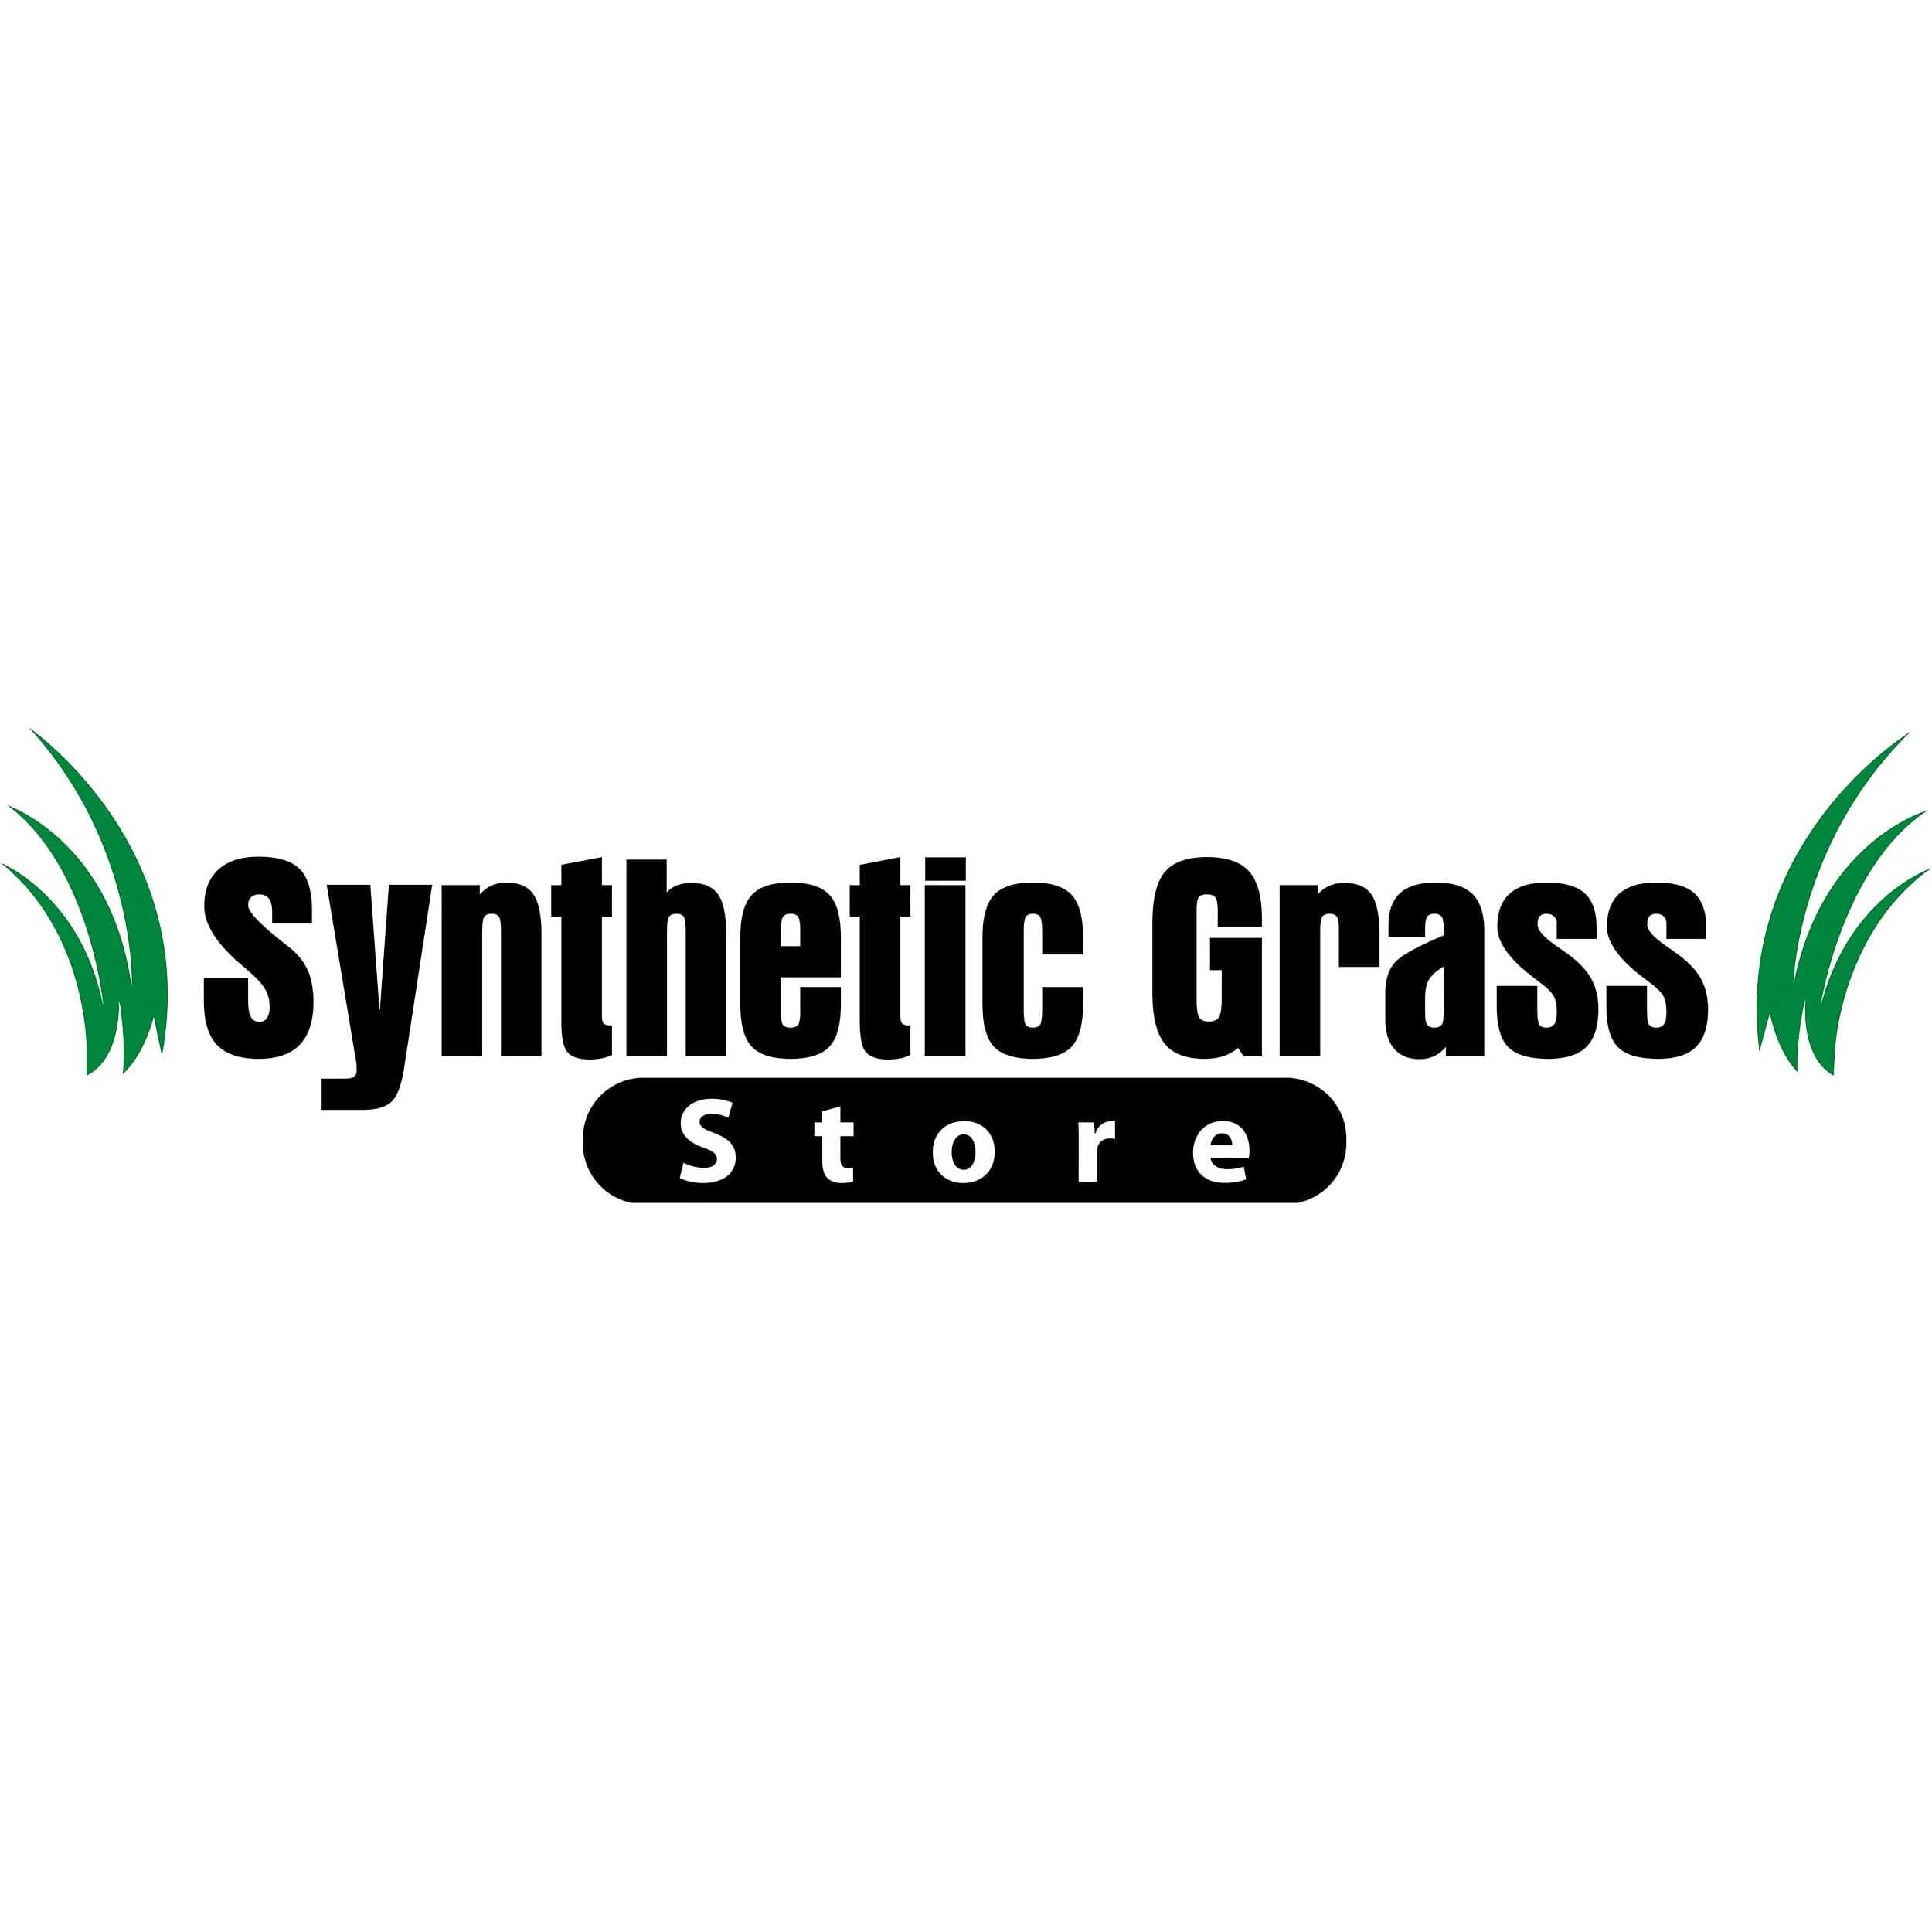 Synthetic Grass Store of California